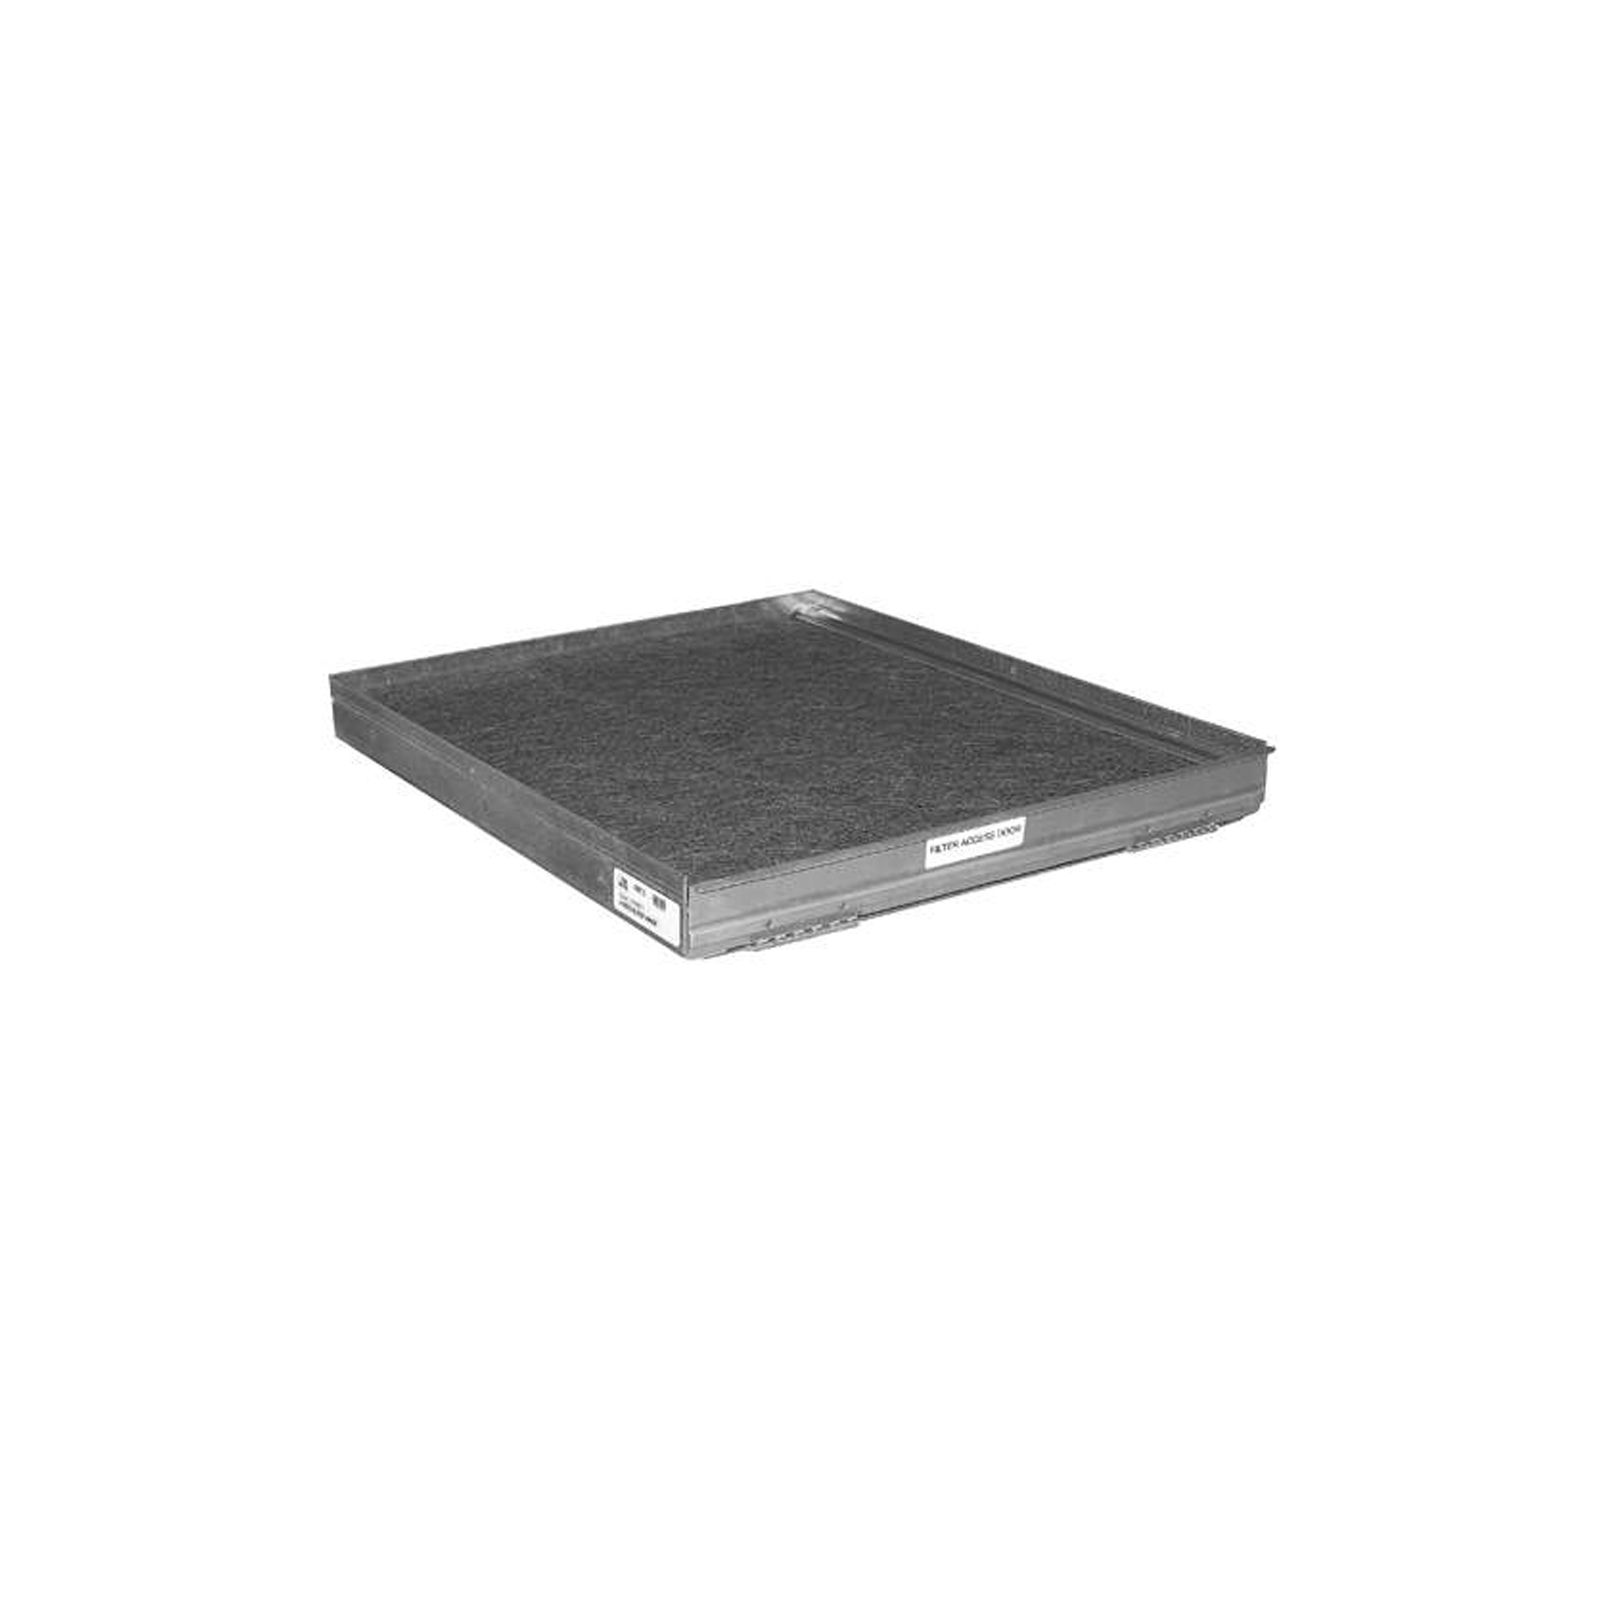 "Miami Tech FFRD19.75TAS - Fixed Filter Rack with Door For Trane/American Standard, 19.75"" W"